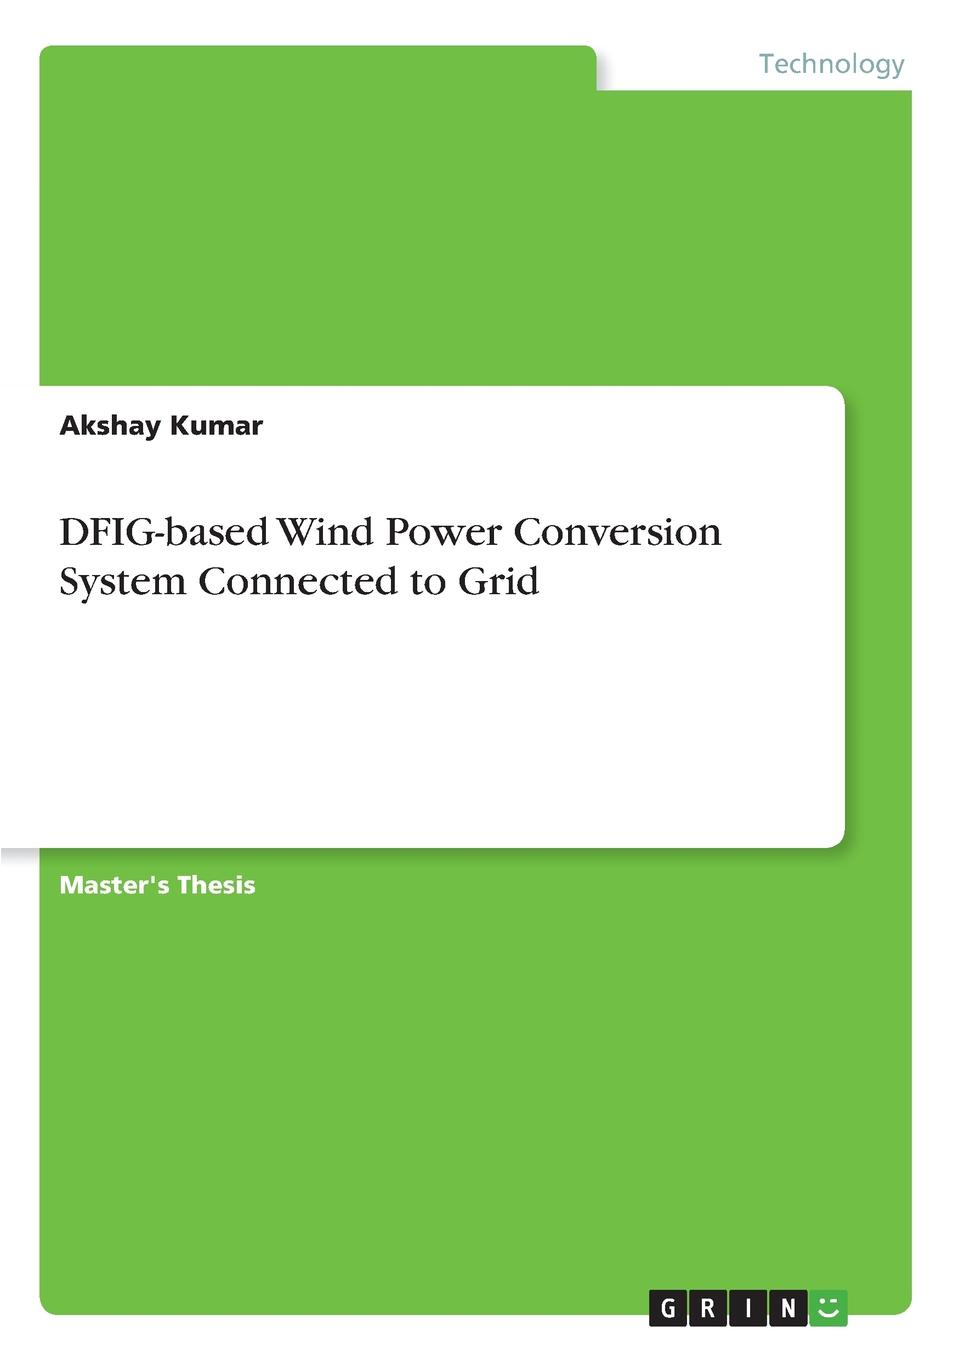 Akshay Kumar DFIG-based Wind Power Conversion System Connected to Grid professional power conversion socket us to eu universal power adaptor high quality travel plug converter bs